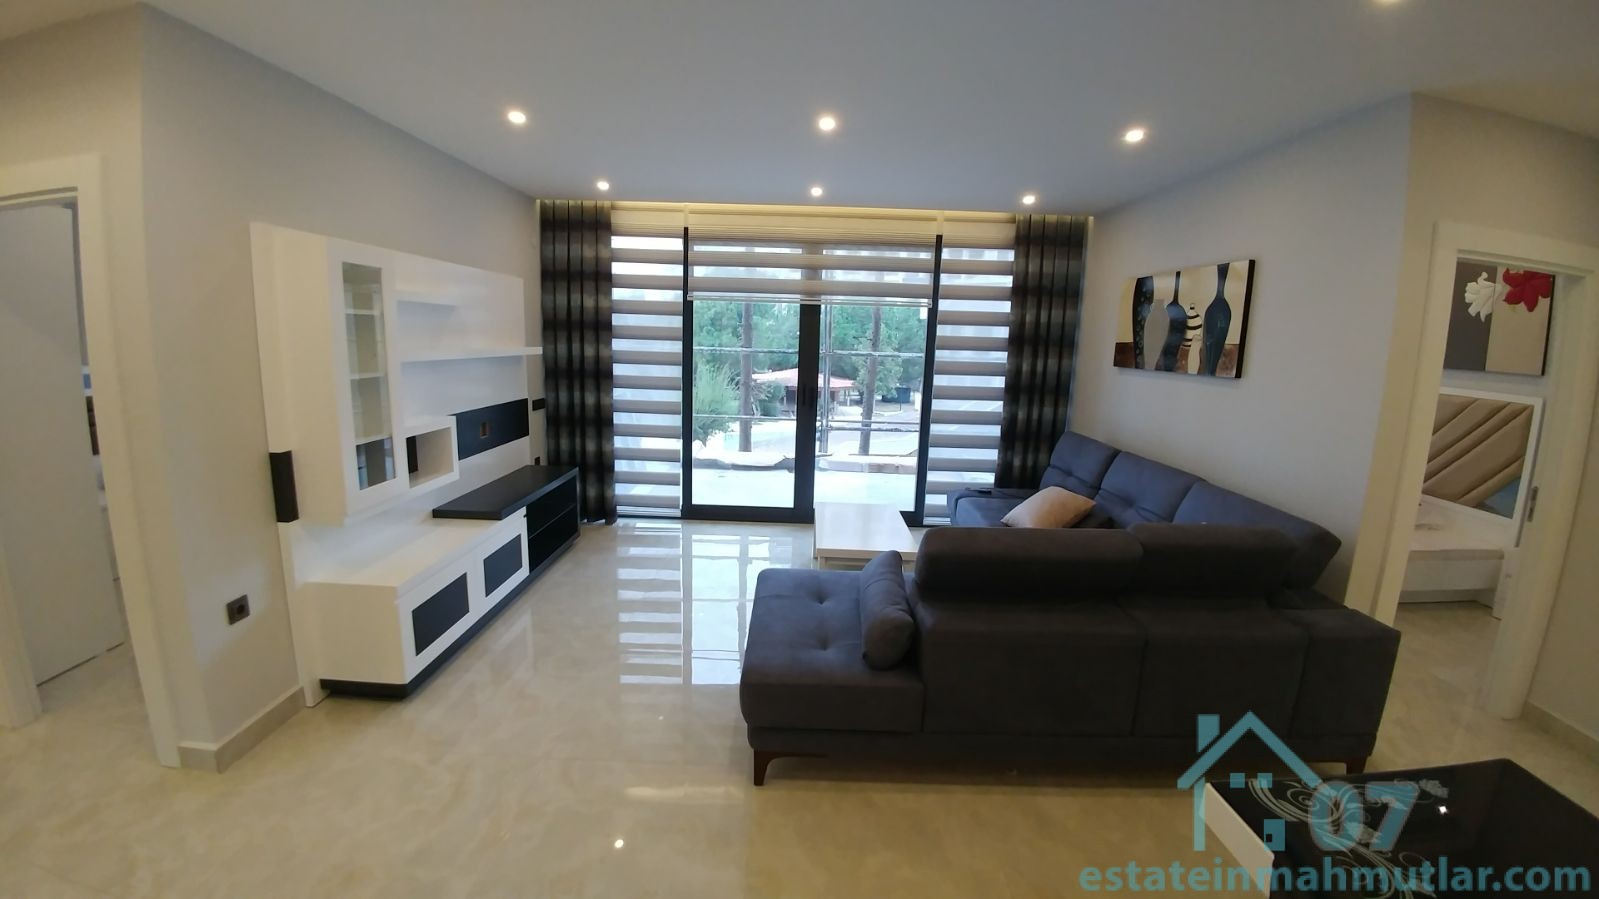 Two Bedroom SEASIDE Duplexes In A Luxurious Complex Right By The Sea!